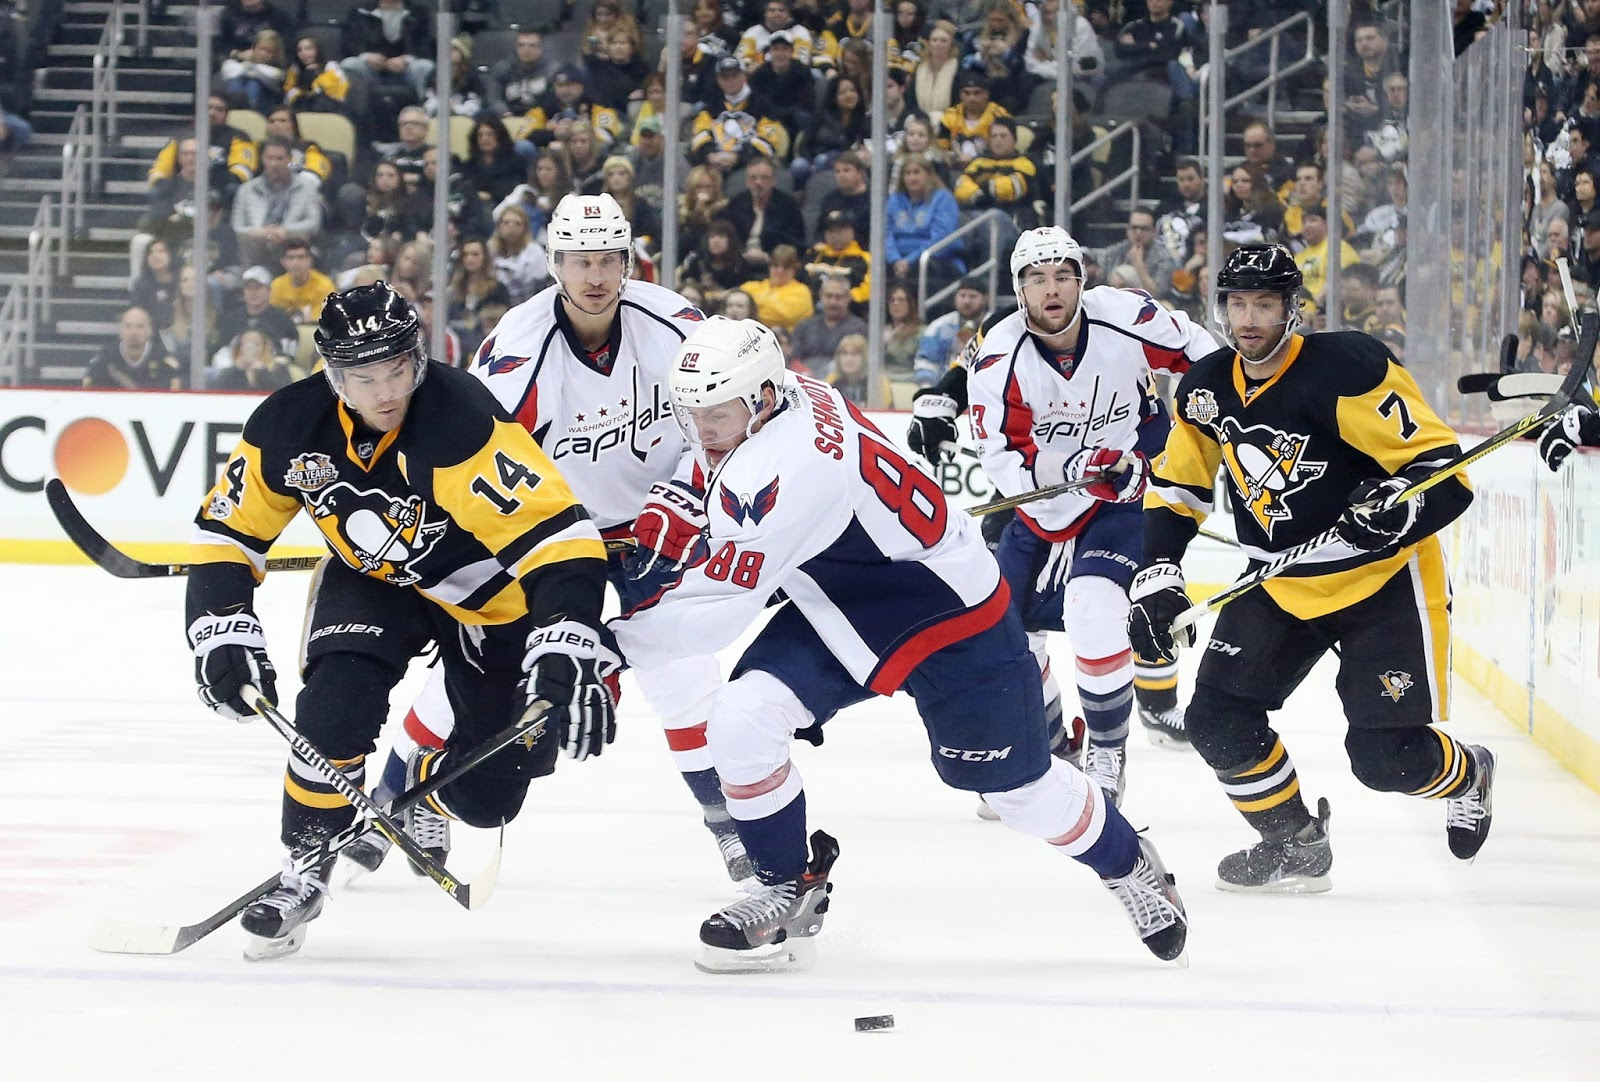 4ce9cf0f073 We have a rematch. Sidney Crosby and Alex Ovechkin will face each other in  round 2 again. Last year